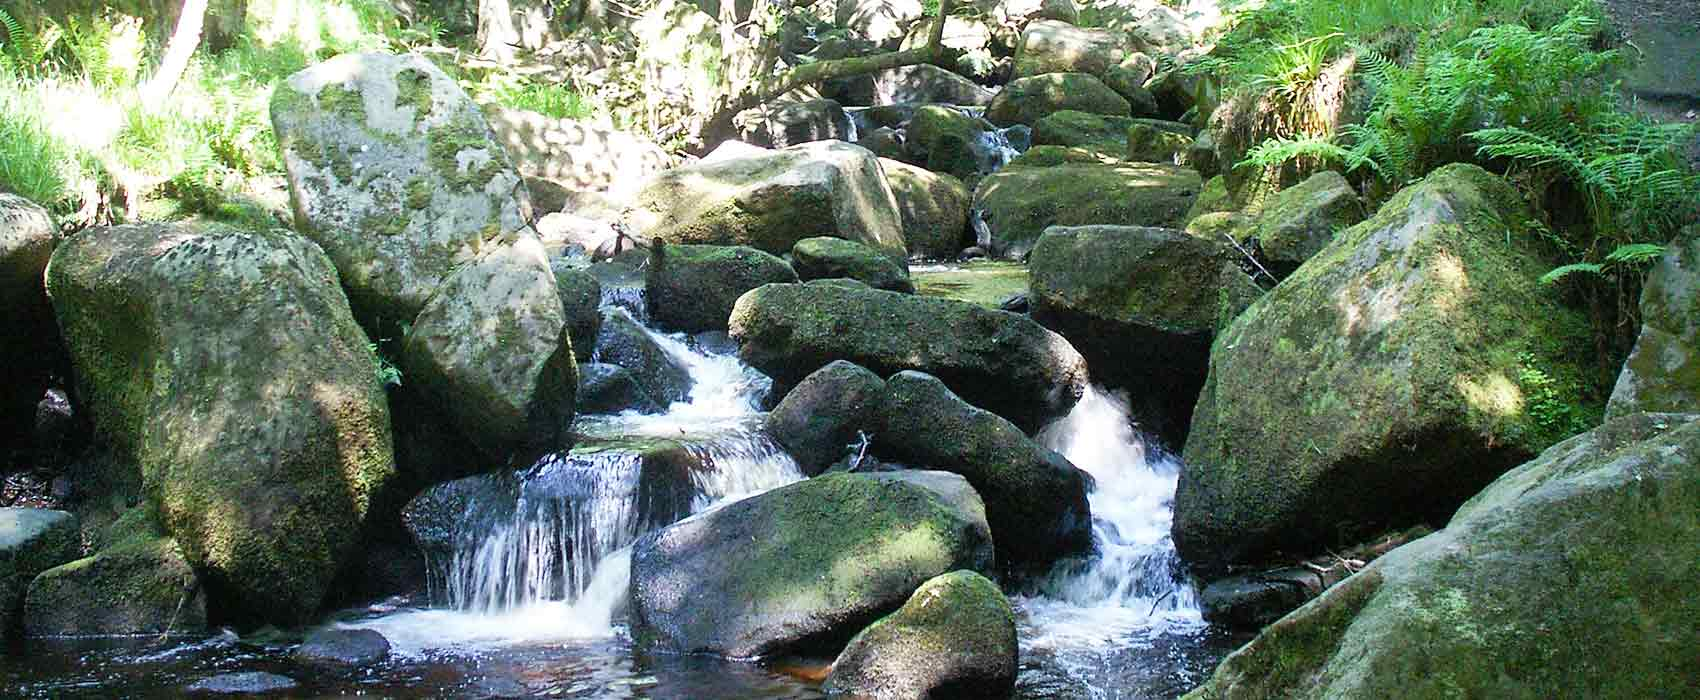 Padley gorge river flowing over moss covered boulders